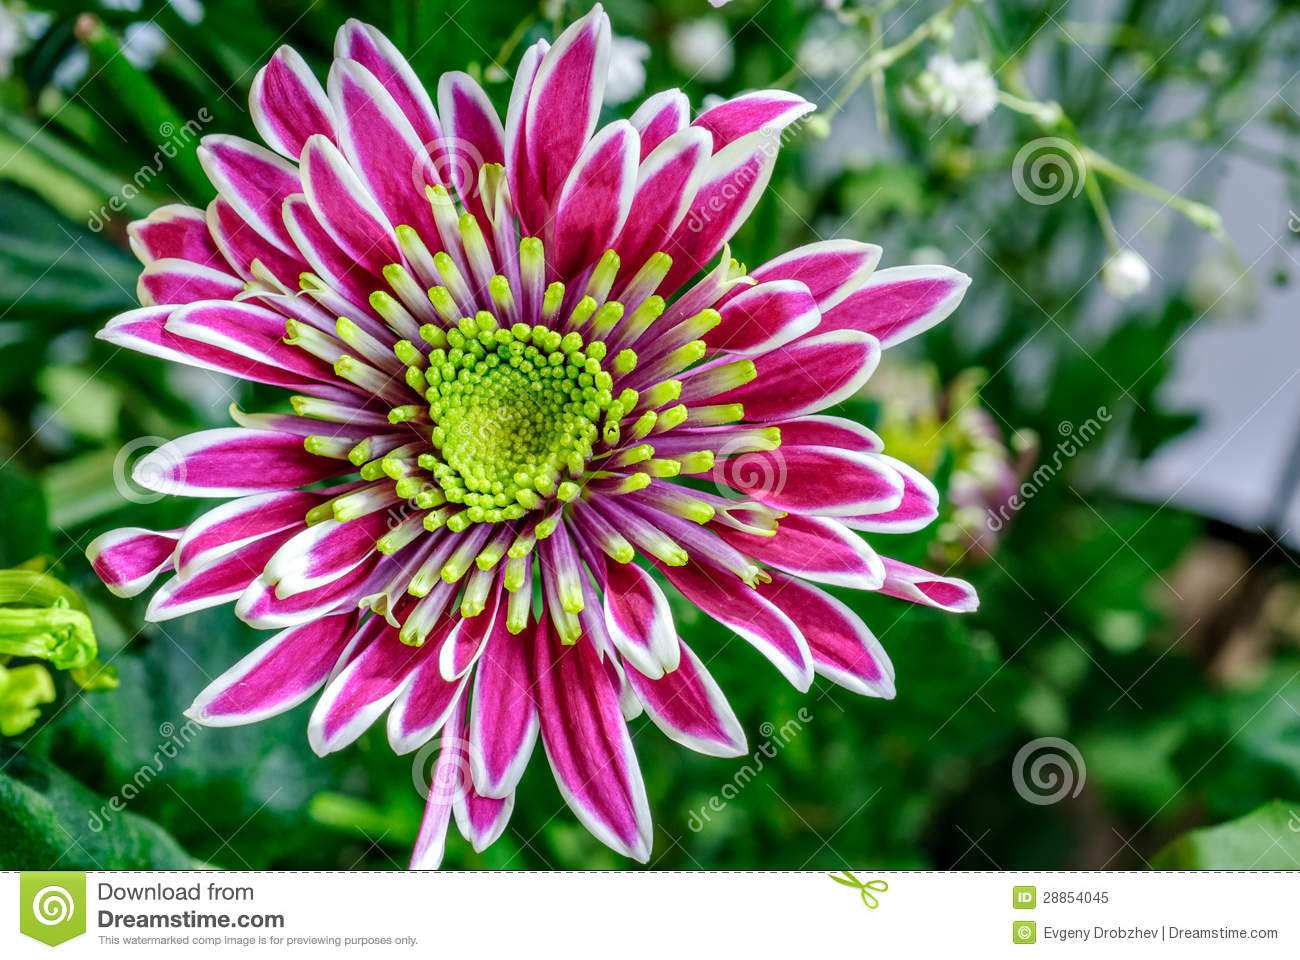 closeup aster flower royalty free stock photo  image, Natural flower